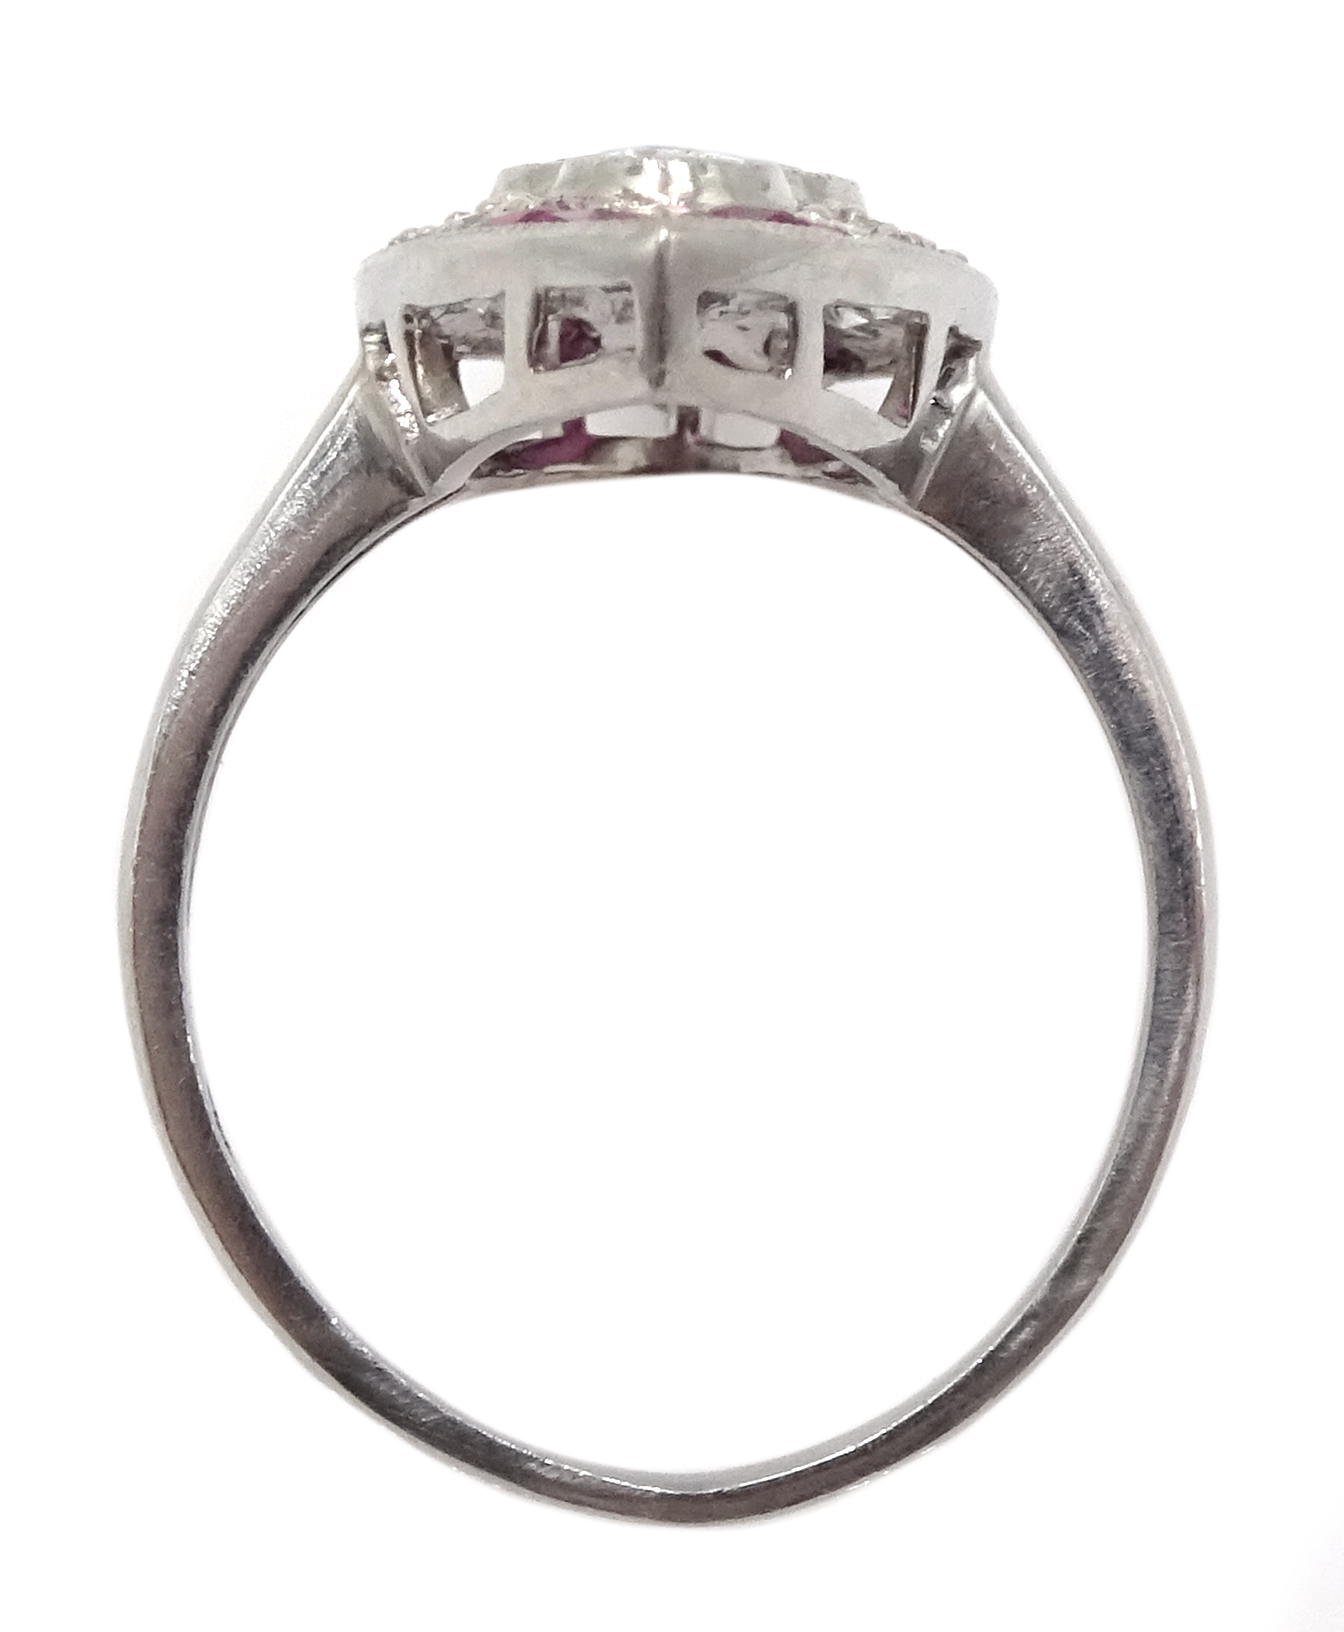 Victorian style marquise shaped platinum ring set with rubies and diamonds, free UK mainland - Image 5 of 6